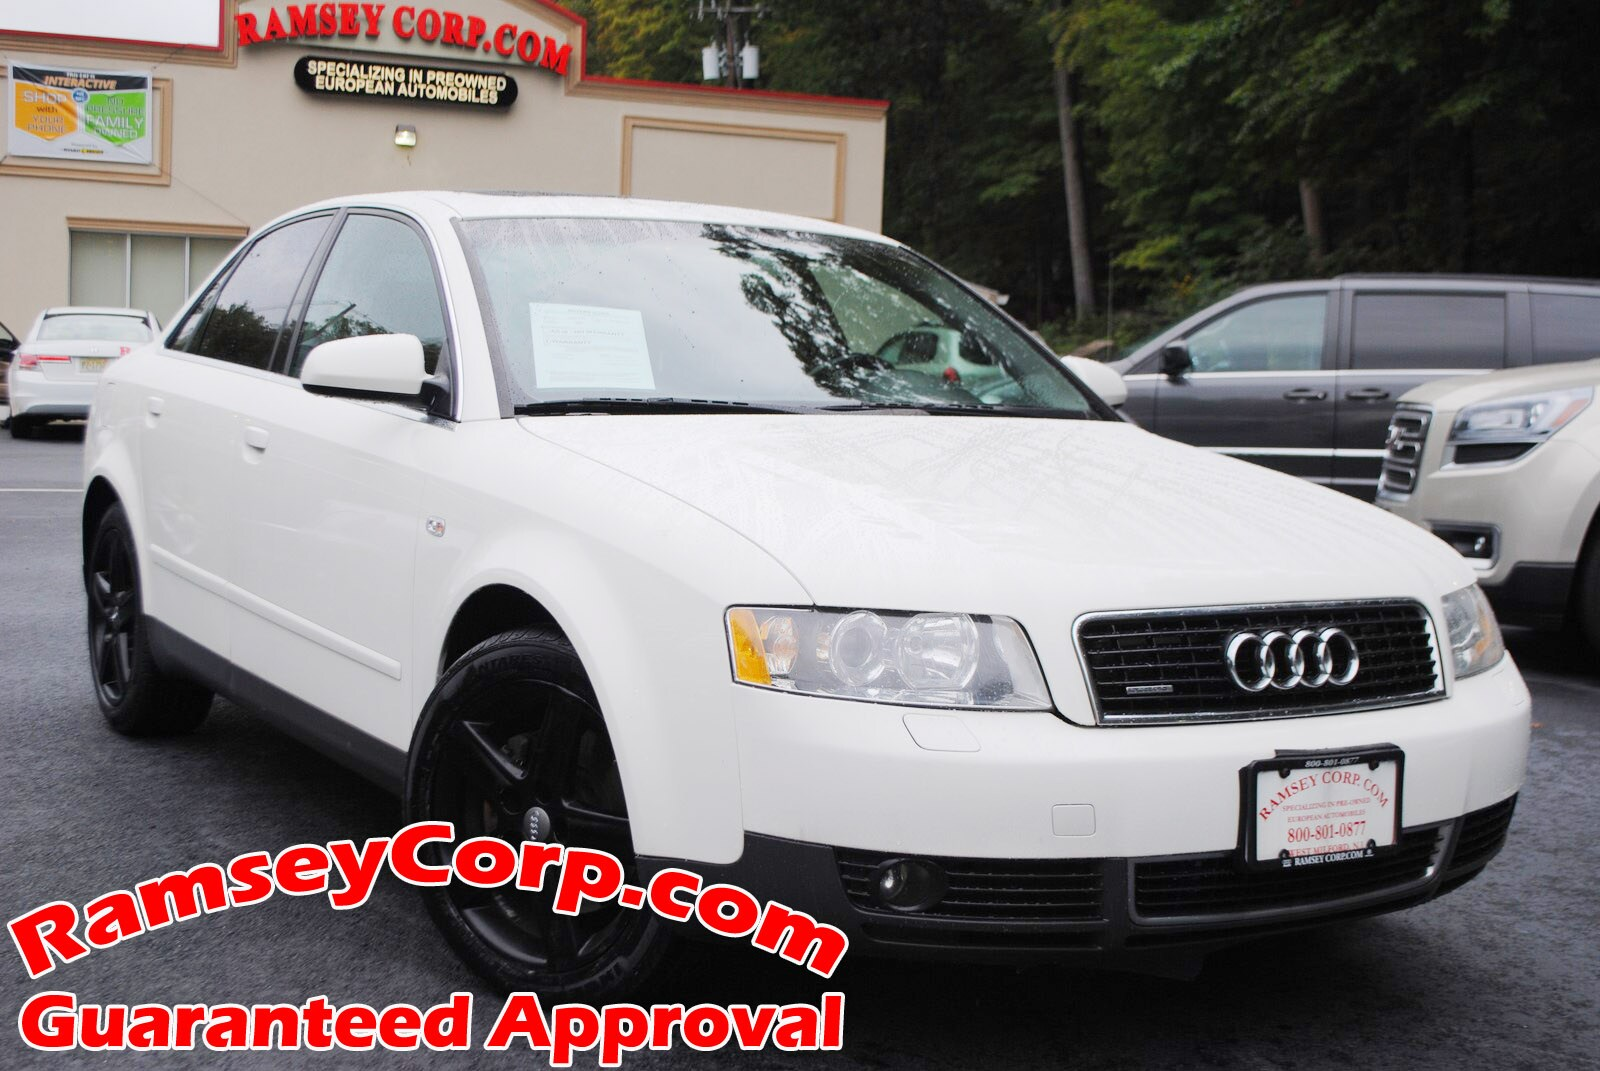 used 2004 audi a4 for sale west milford nj rh ramseycorp com 2004 audi a4 1.8t quattro owners manual pdf 2004 audi a4 3.0 quattro owners manual